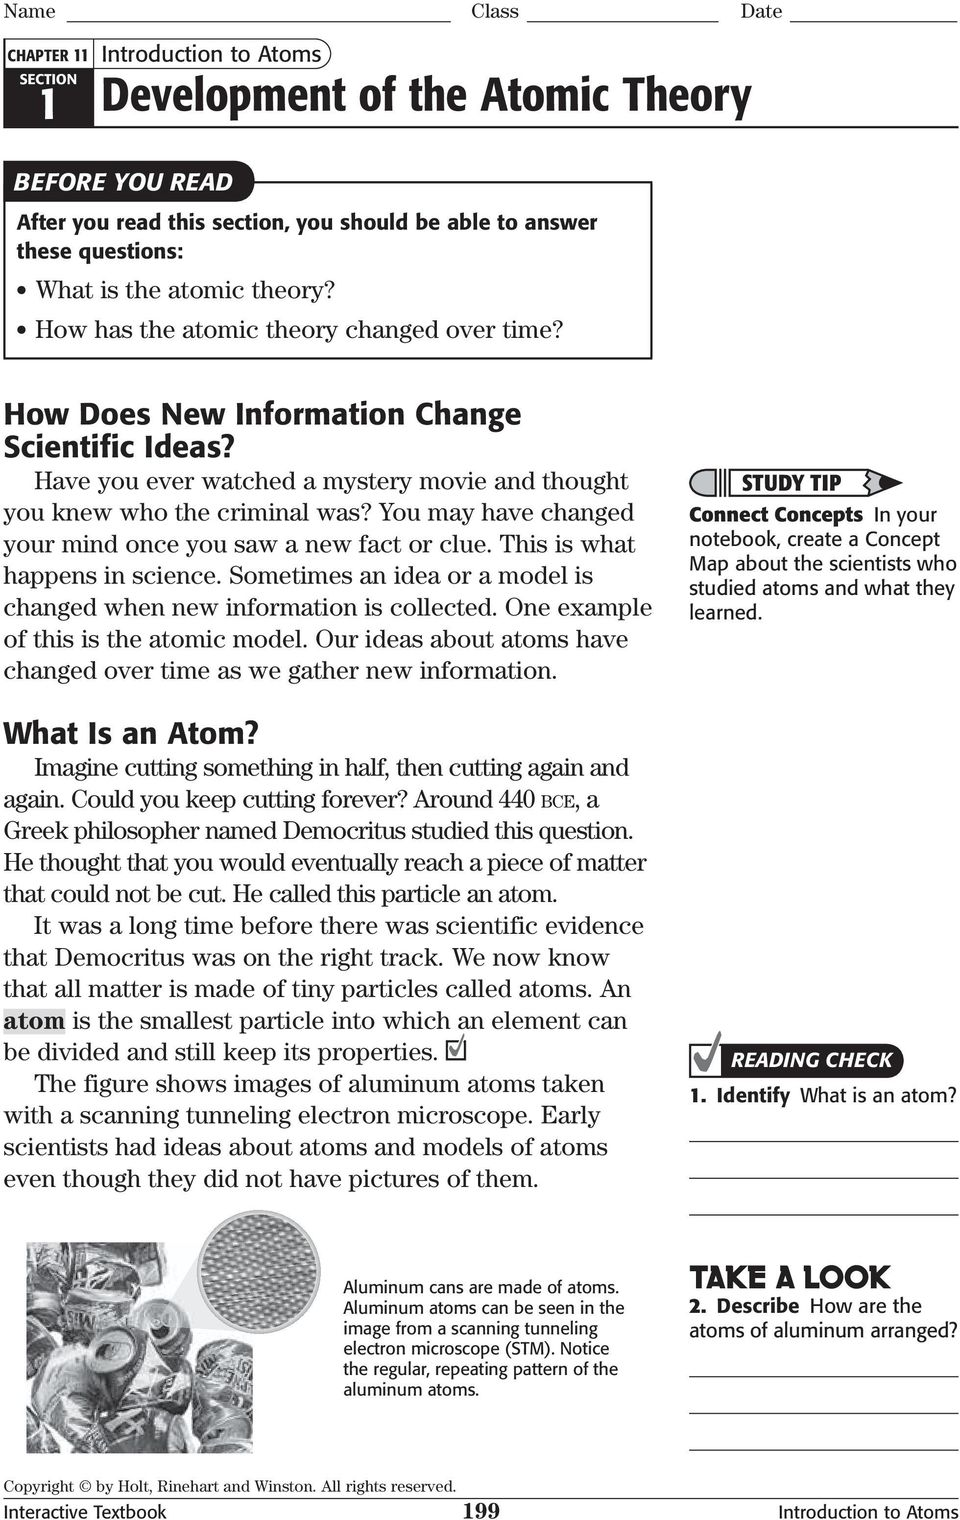 You may have changed your mind once you saw a new fact or clue. This is what happens in science. Sometimes an idea or a model is changed when new information is collected.